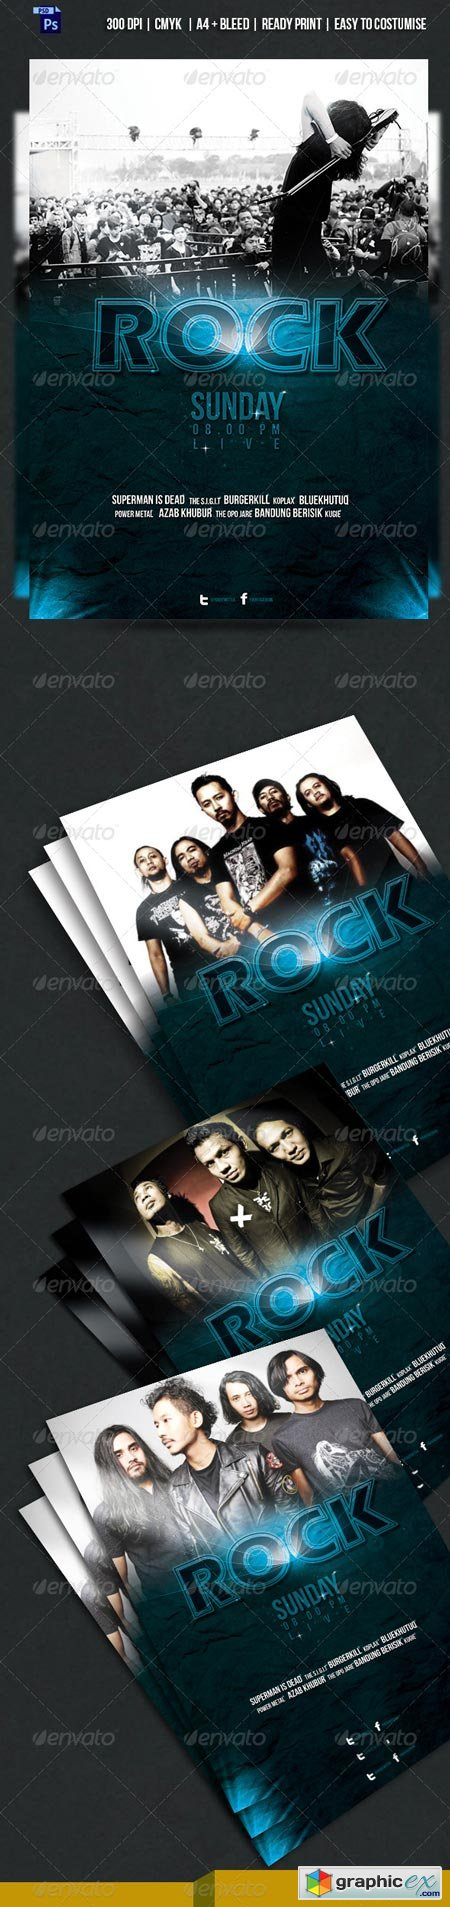 KOPLAX - Rock Band Concert Flyer 6680437